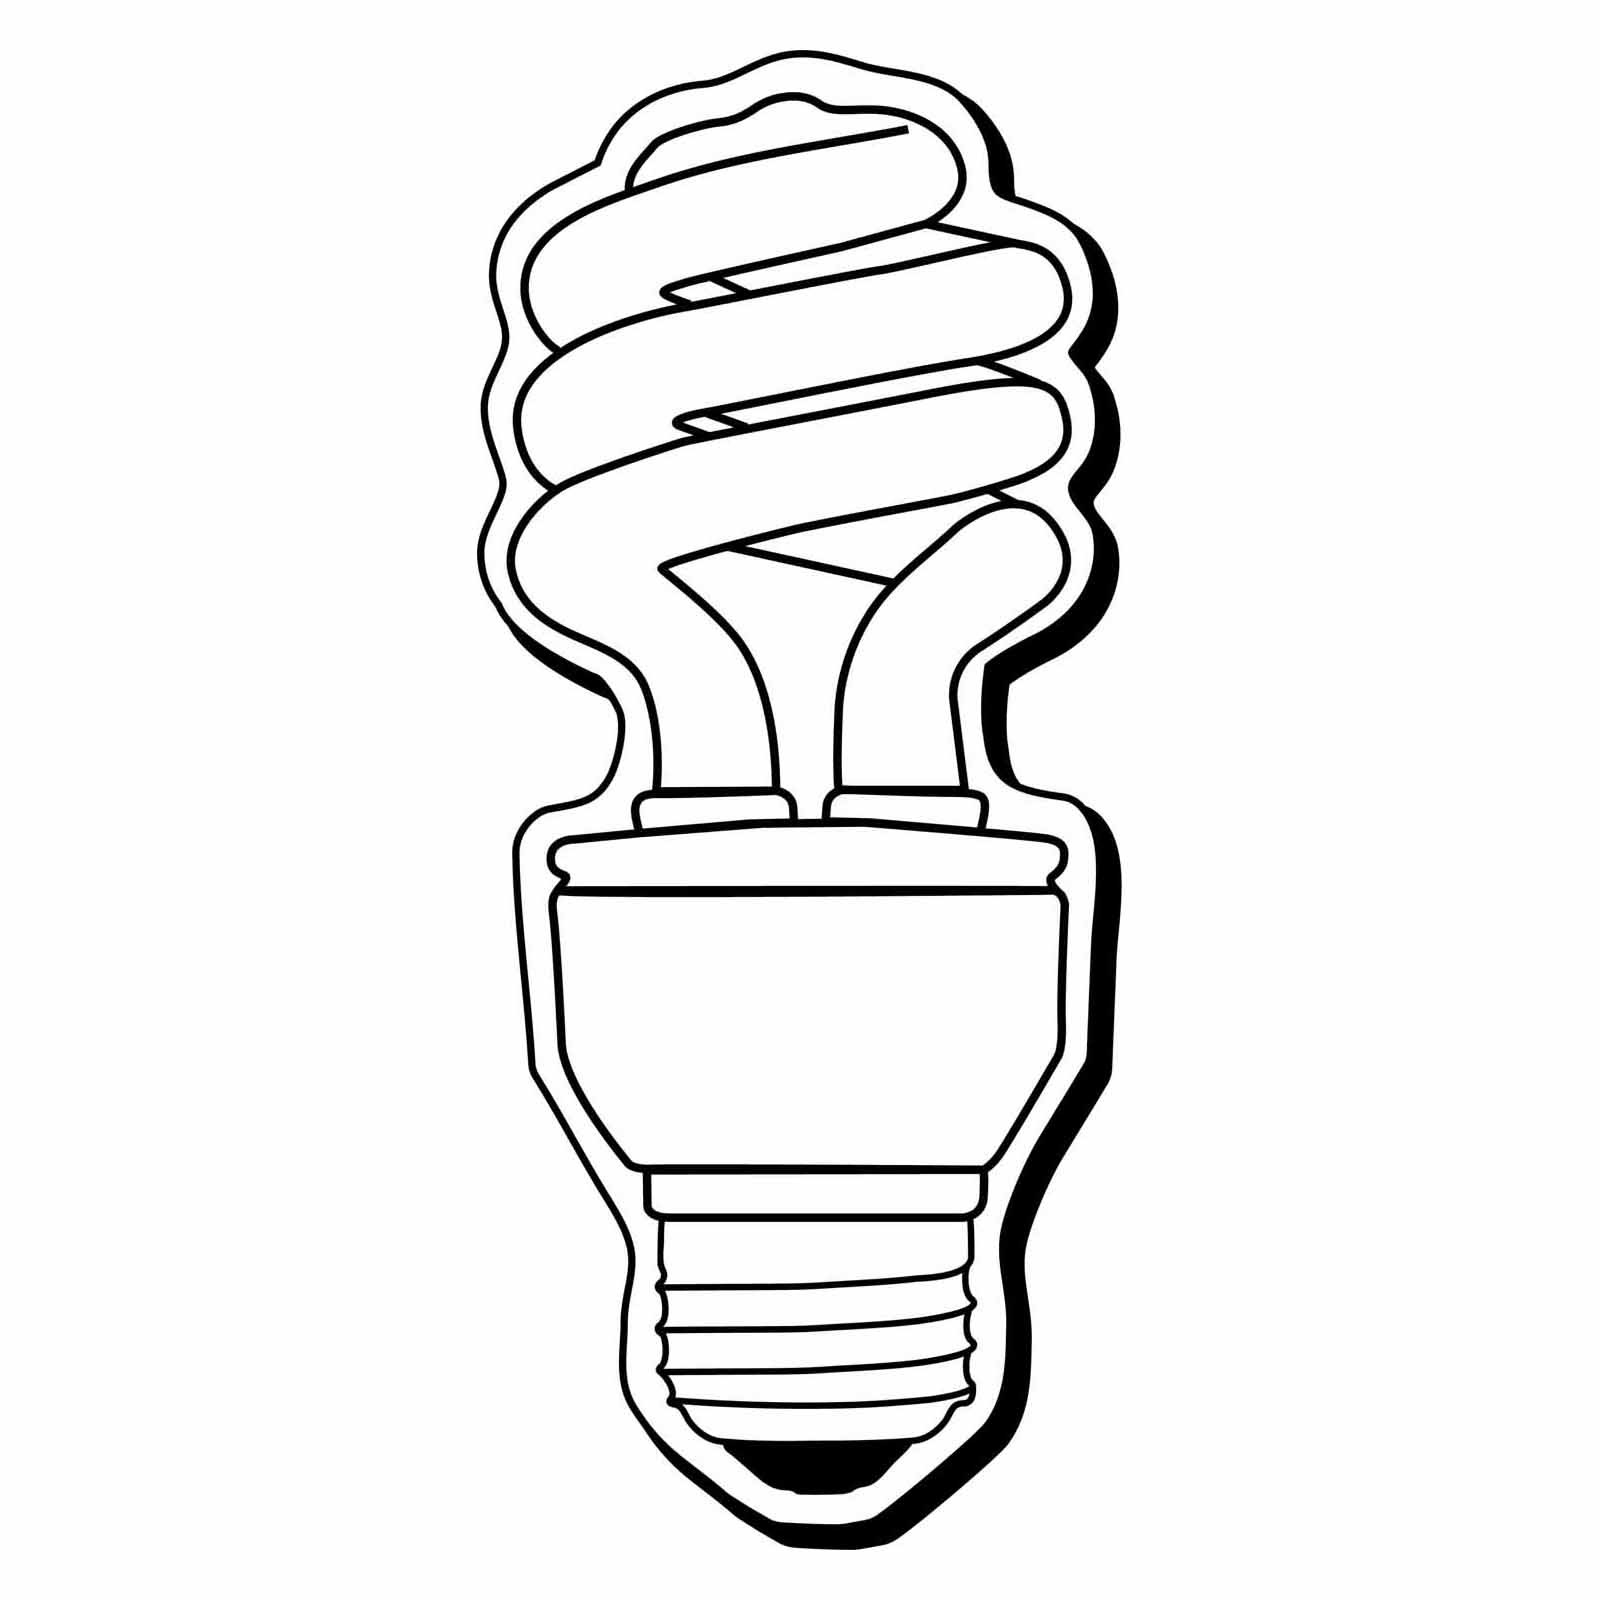 Drawn bulb cfl bulb Light%20bulb%20drawing Drawing Panda Lightbulb Clipart